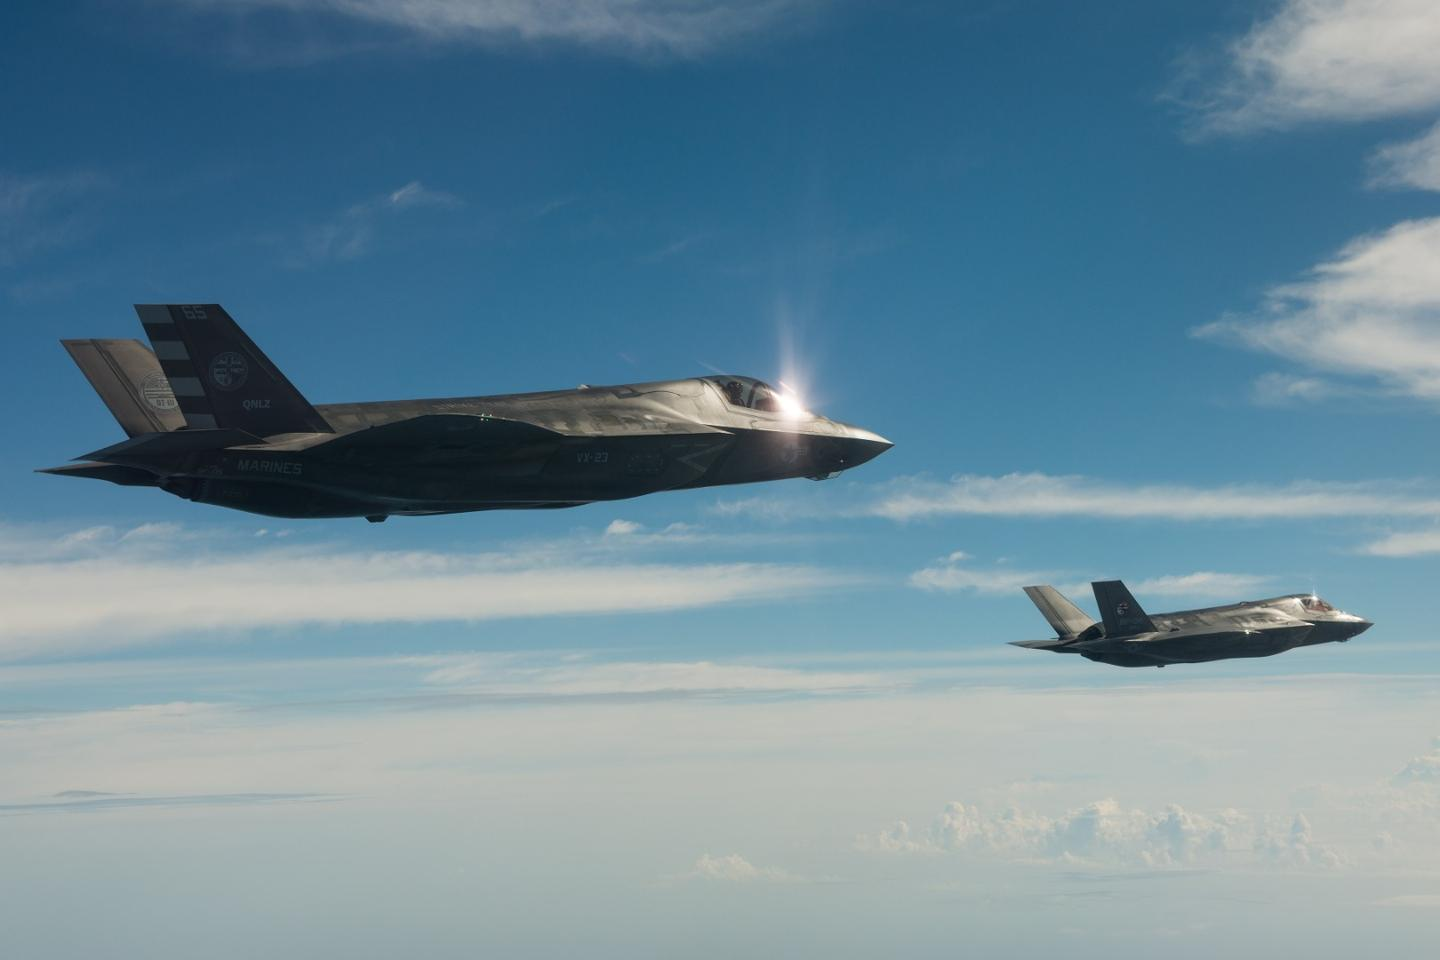 Two F-35 fighters in flight